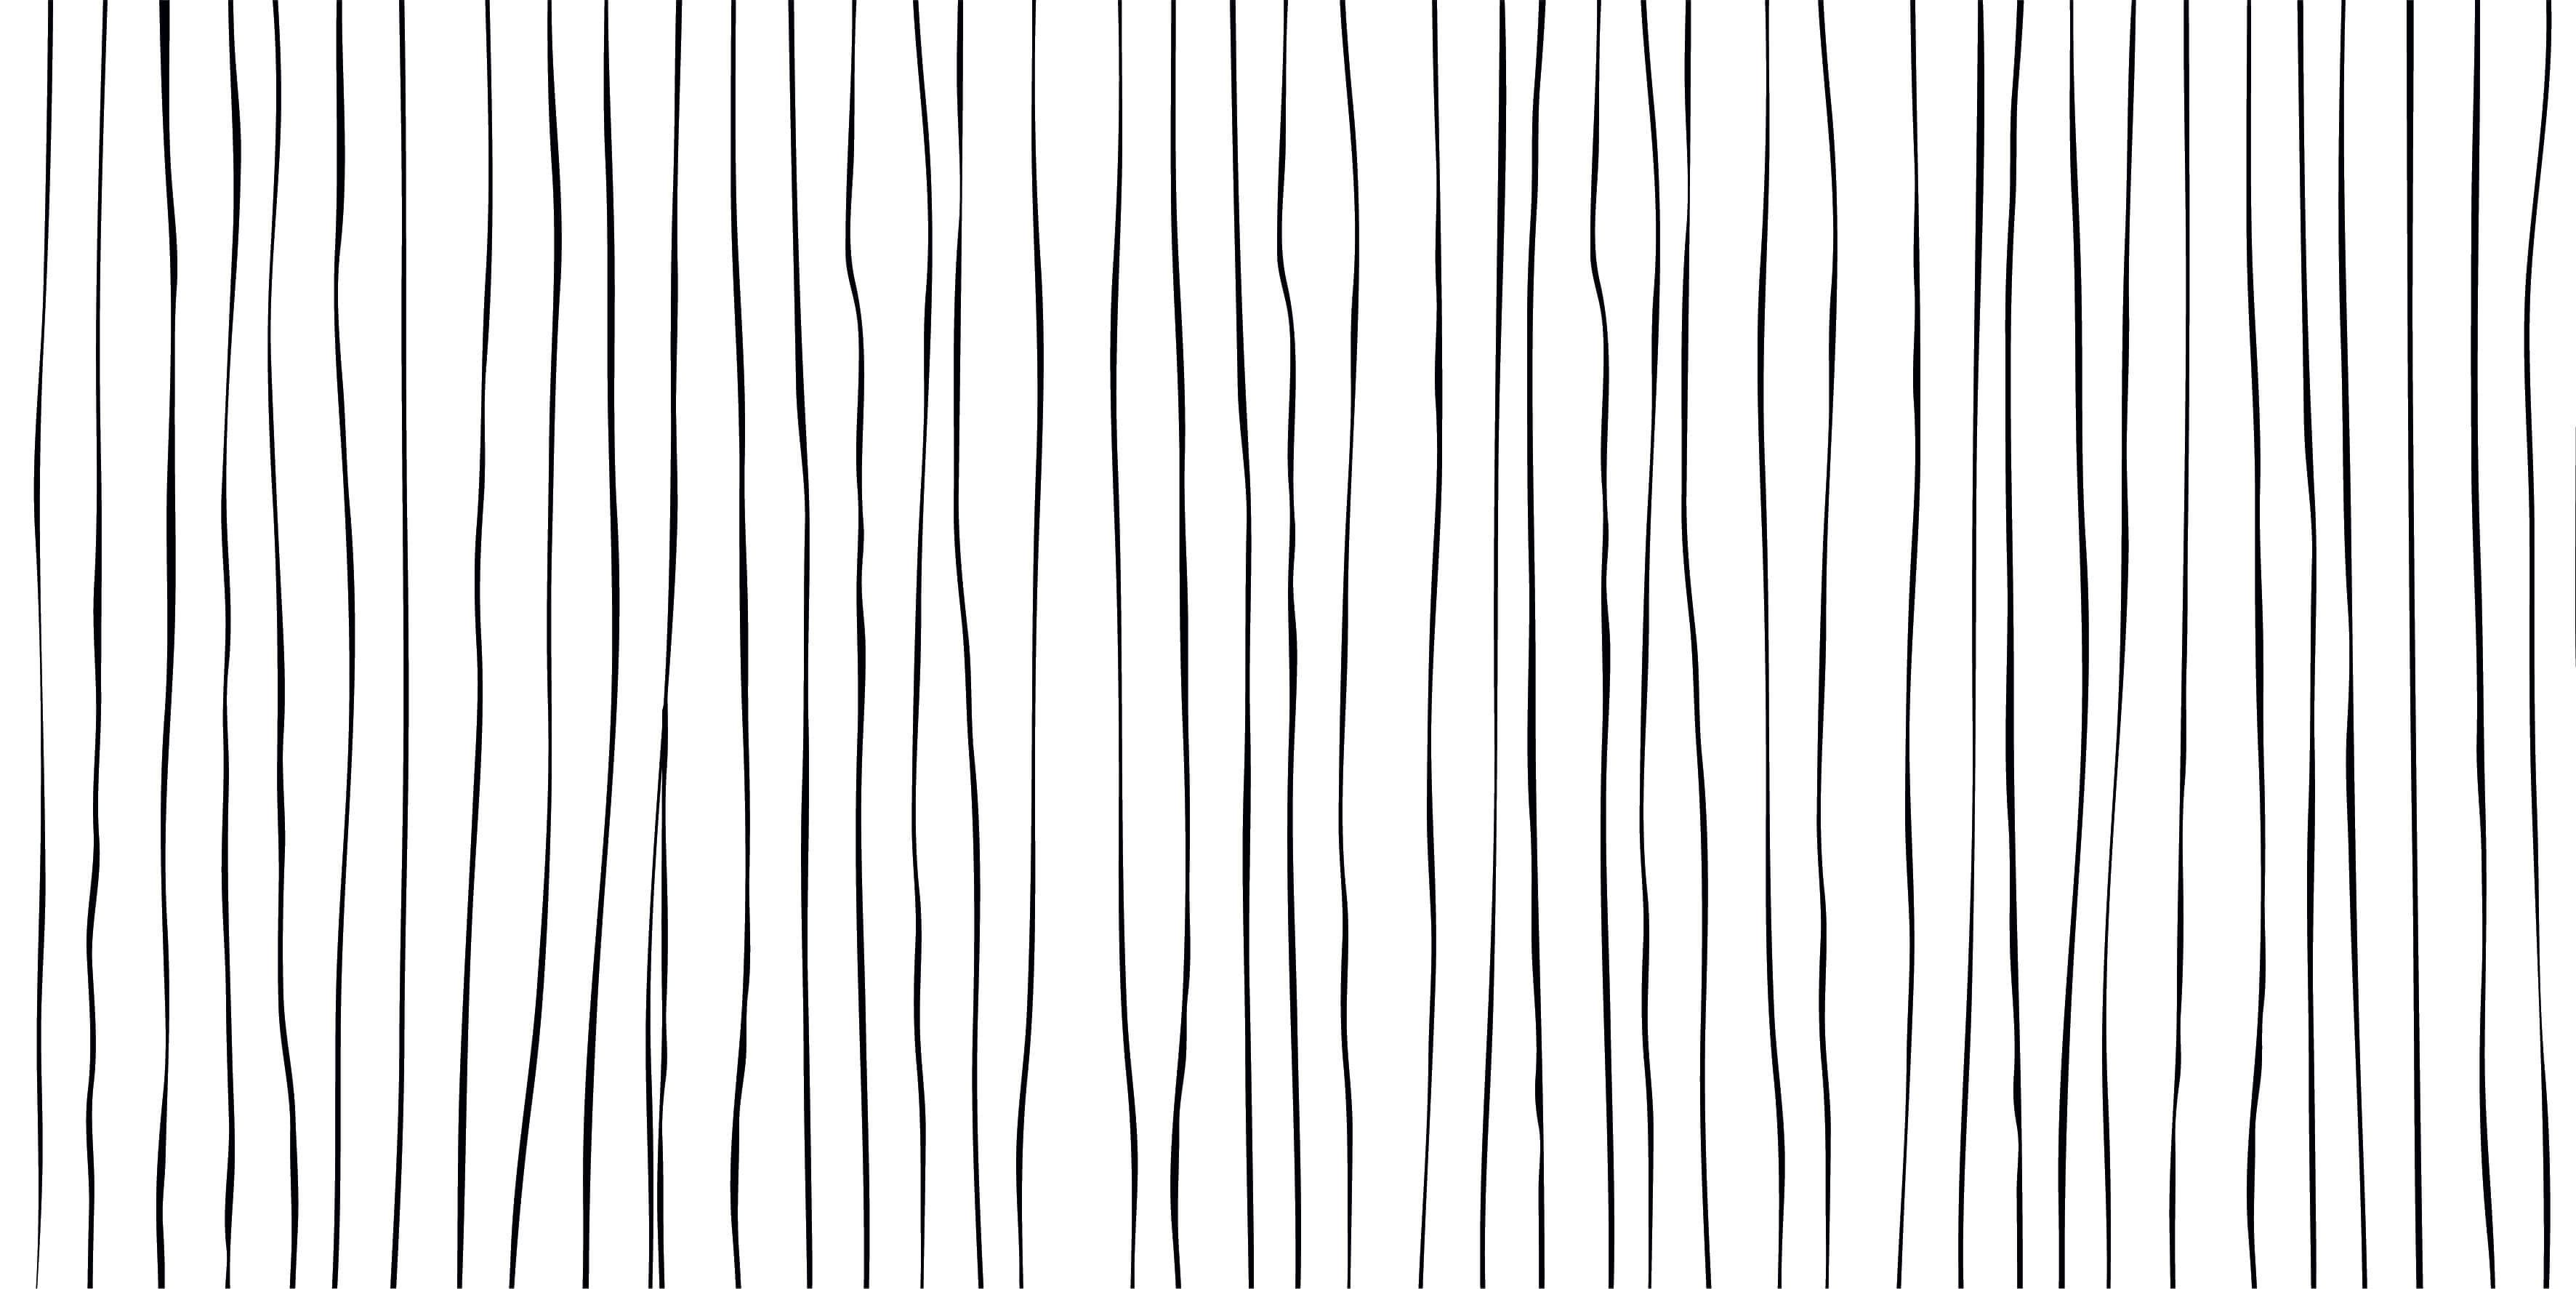 Abstract - Abstract lines in black and white - Warehouse